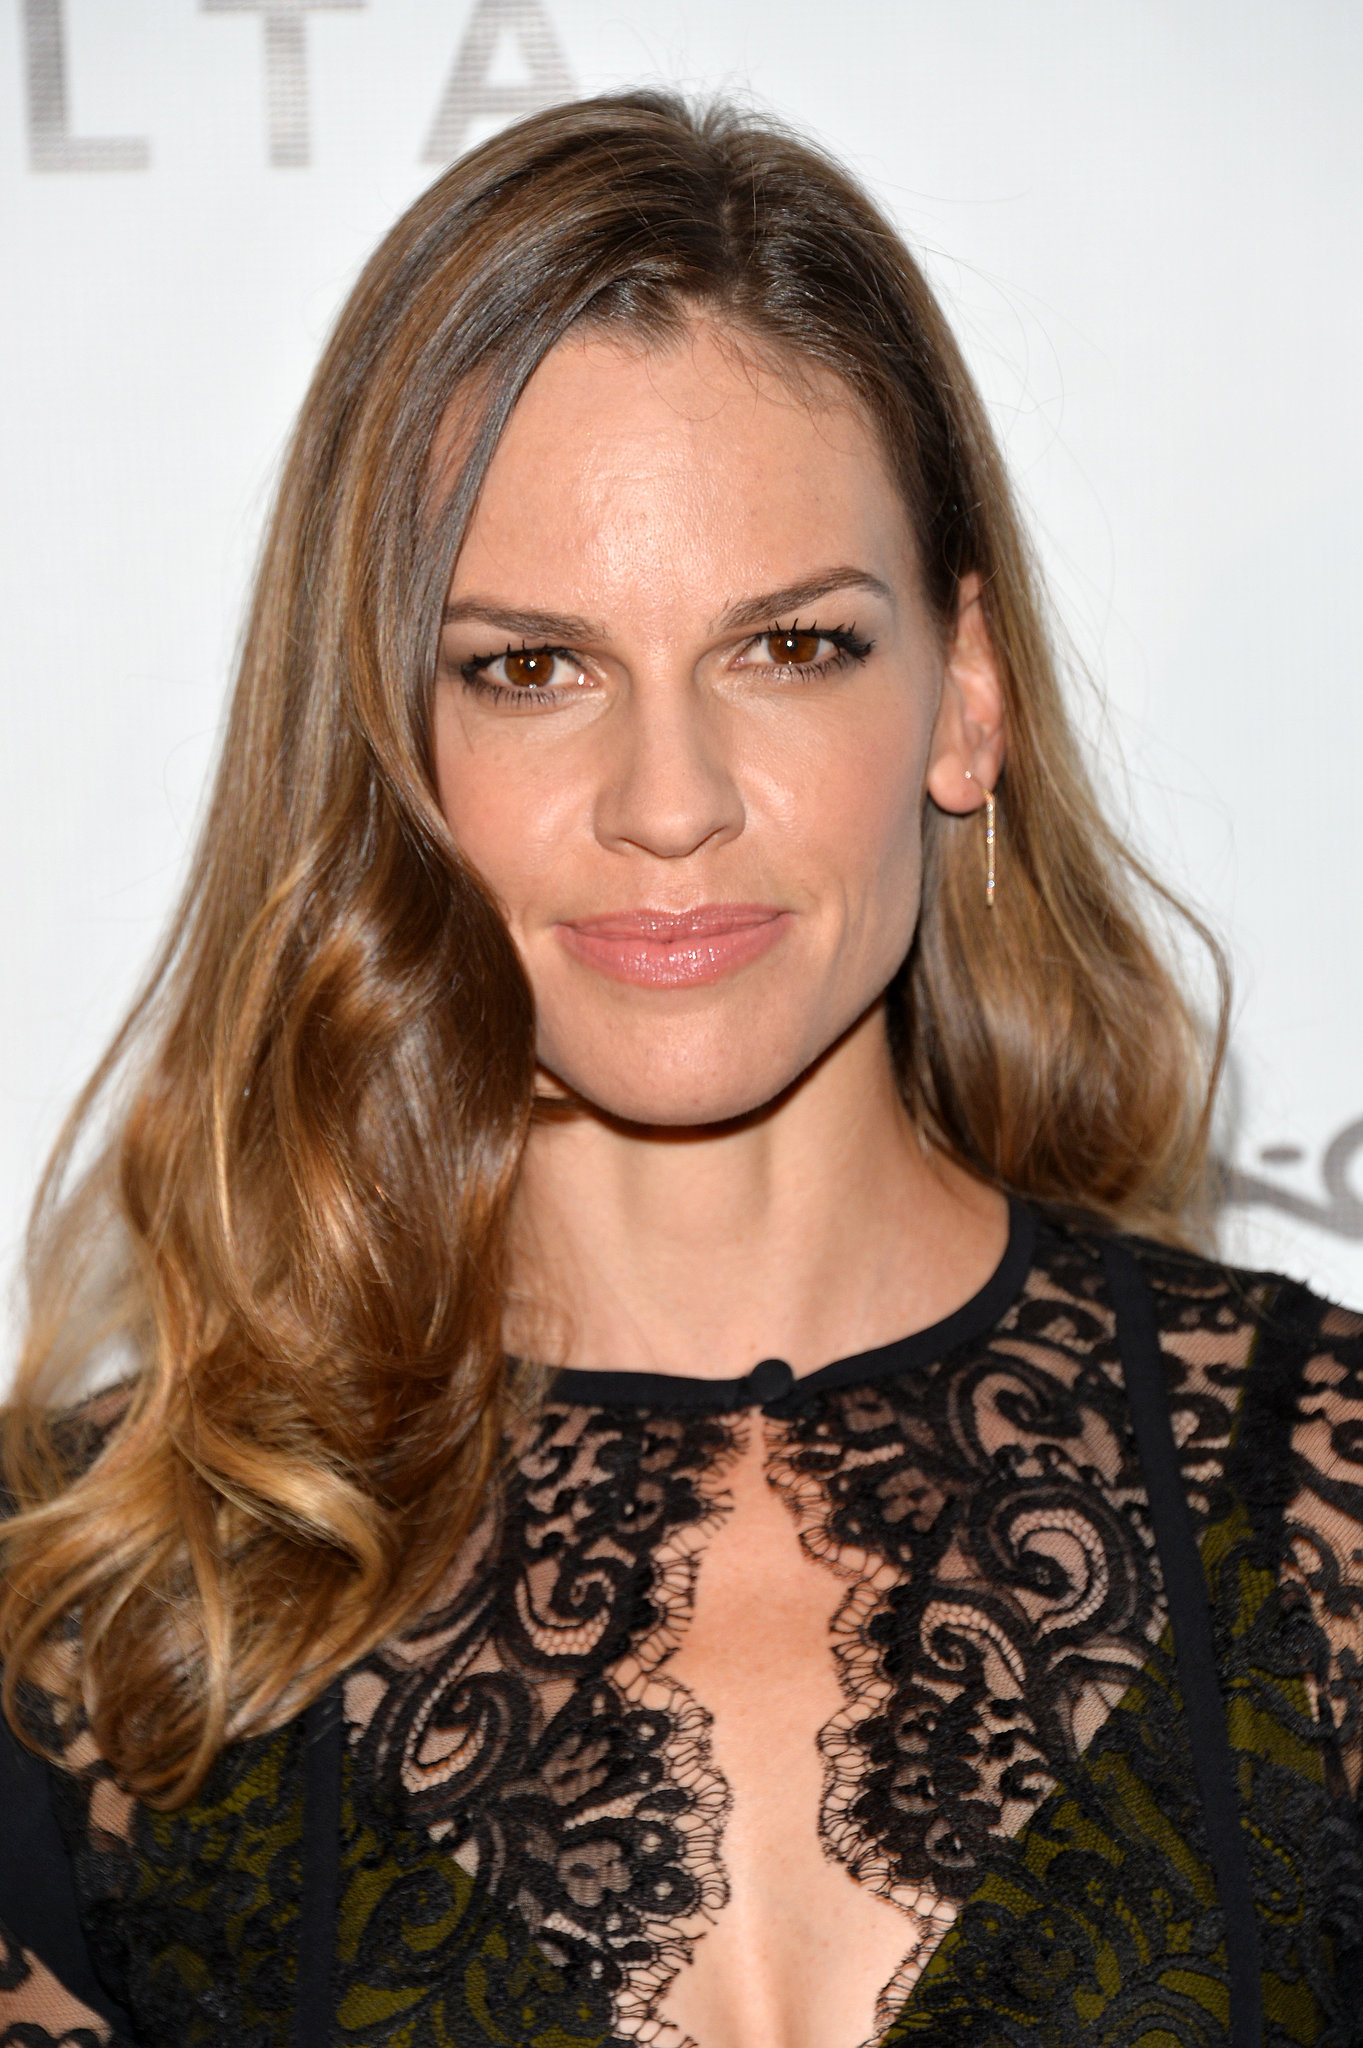 We love Hilary Swank's full-on glam style at the amfAR Inspiration Gala